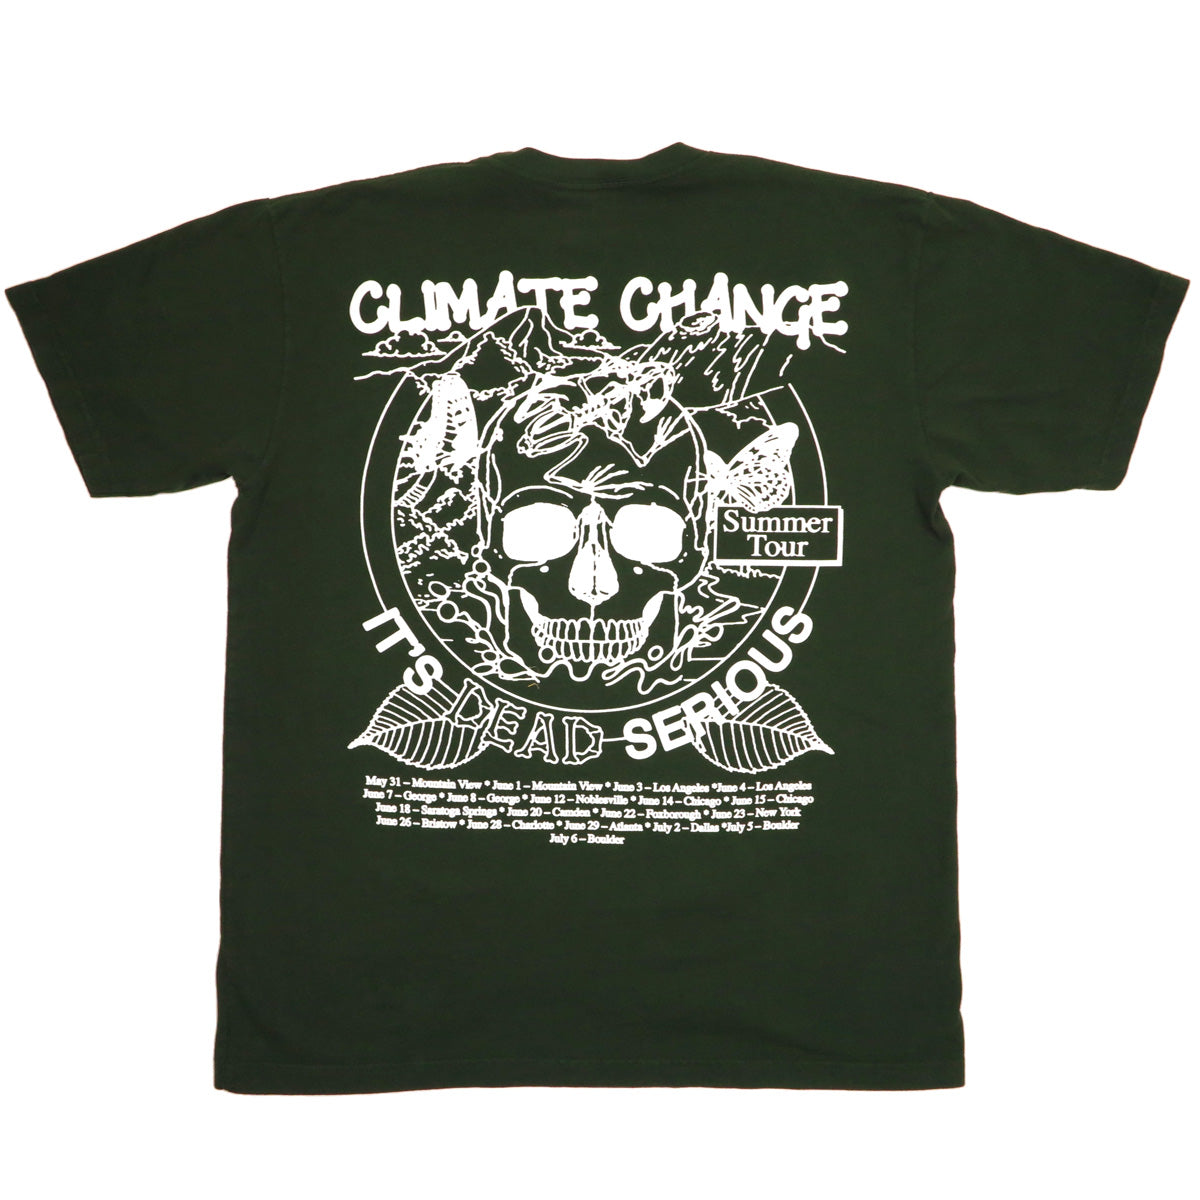 d22122648d51 ... Climate Change is Dead Serious (greener pastures) product shot. S M